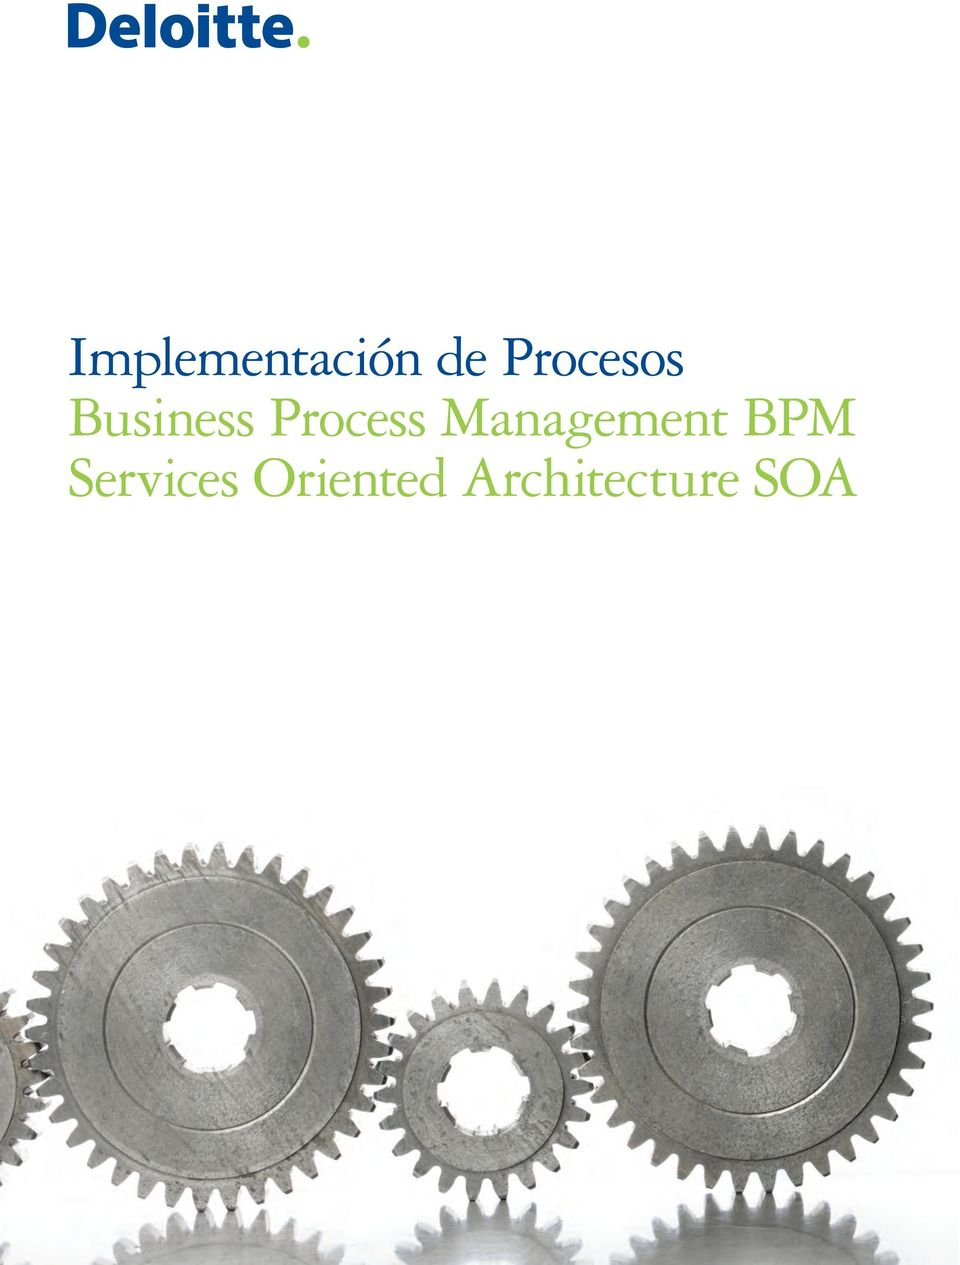 Process Management BPM